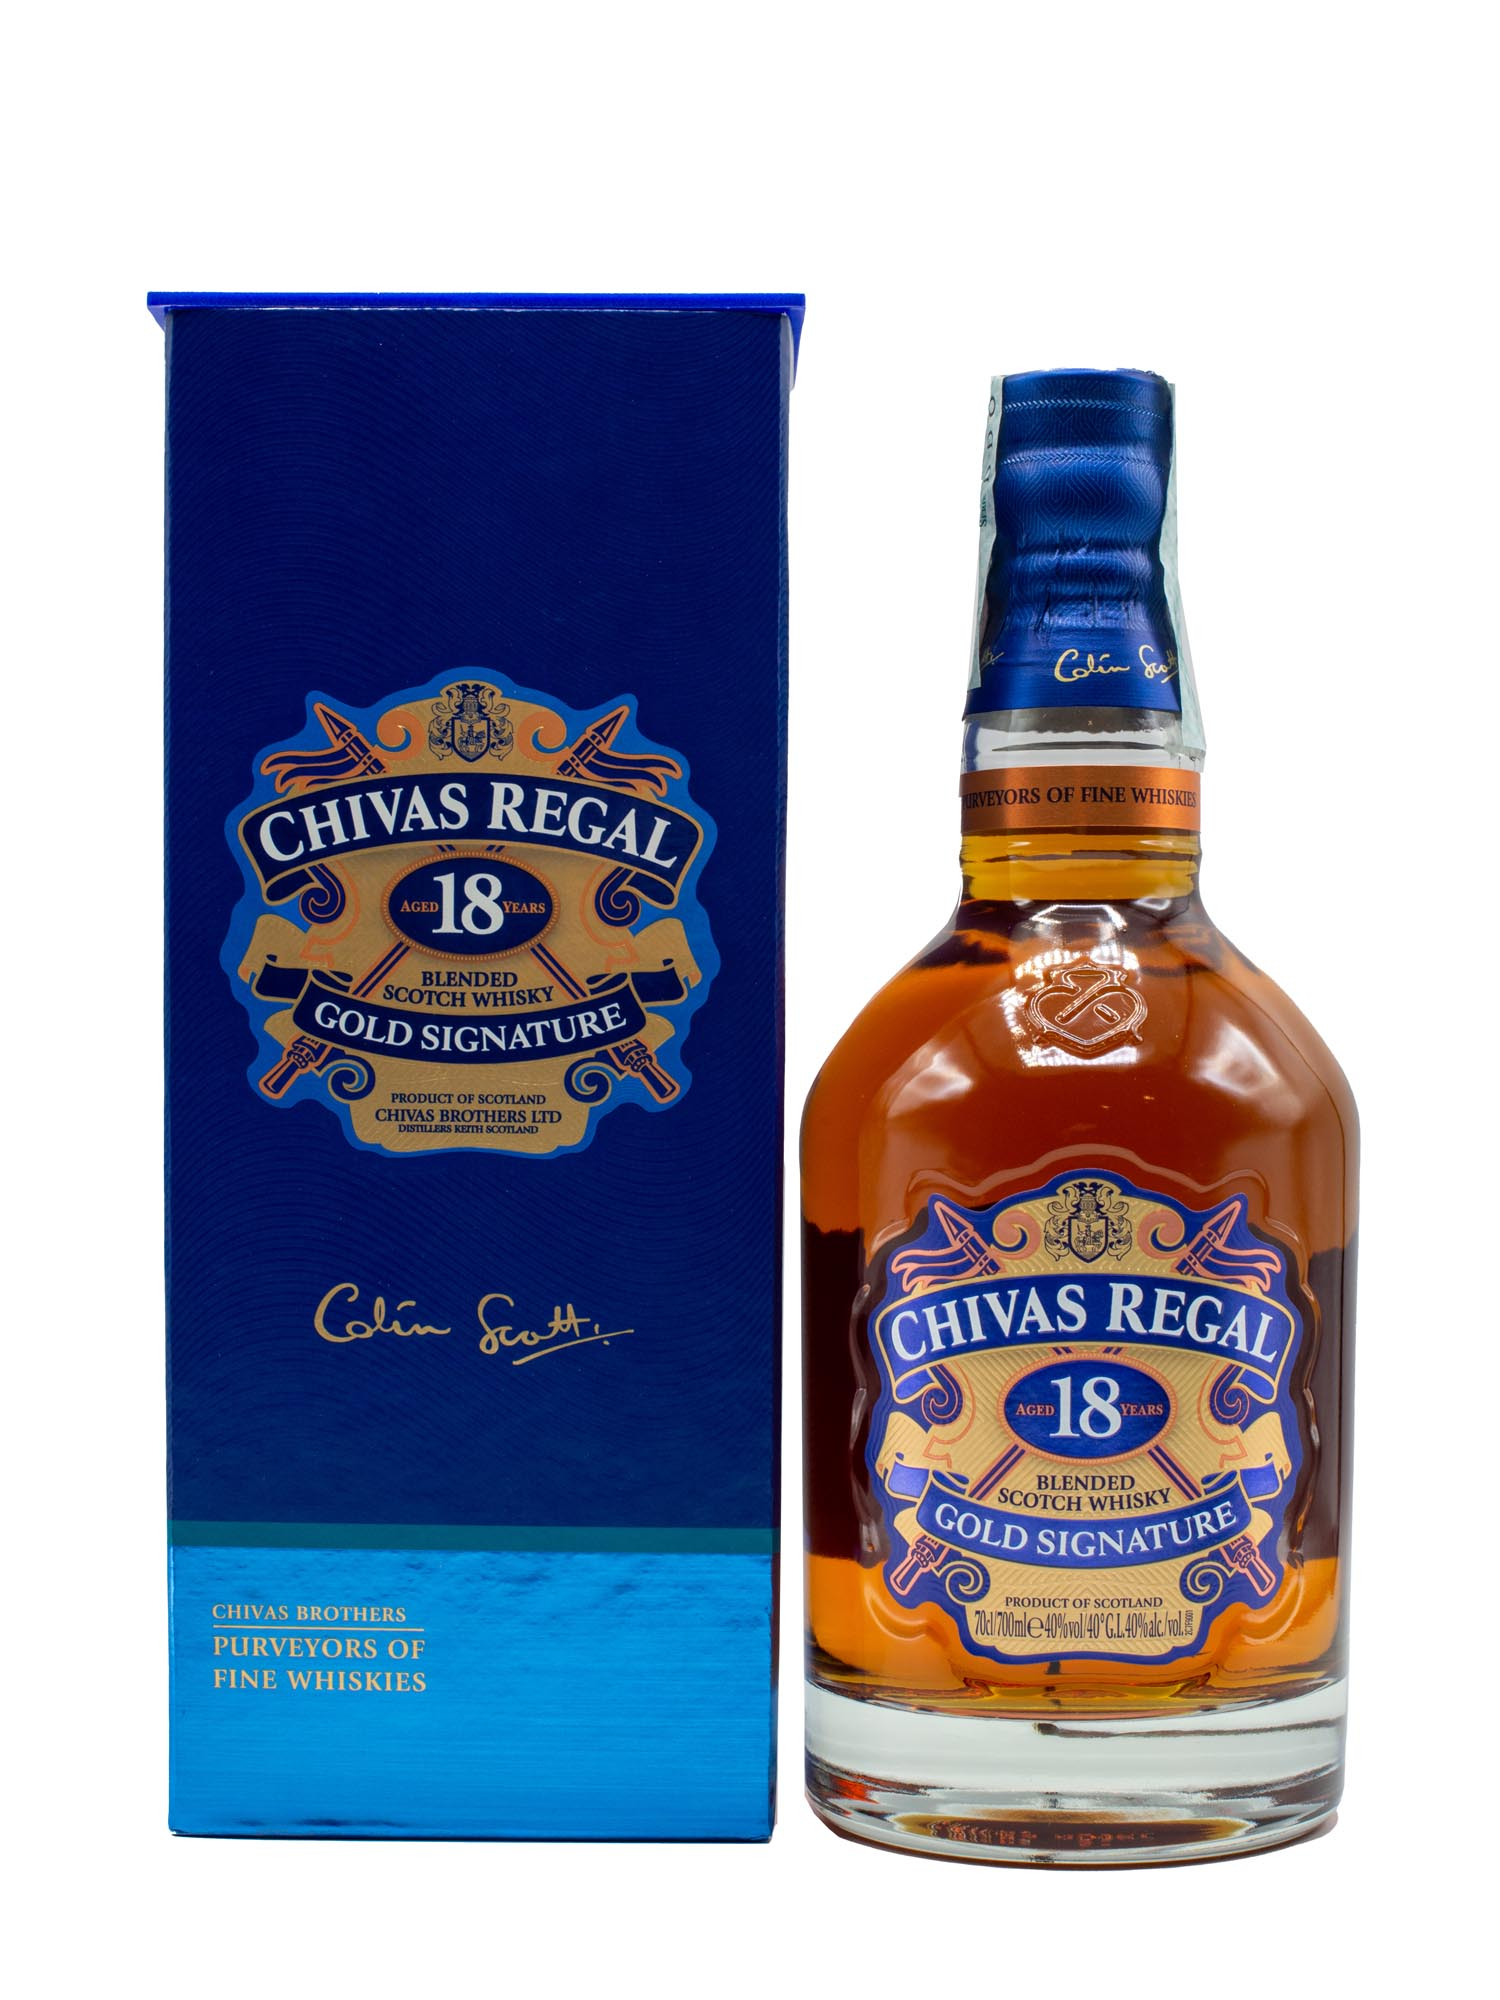 WHISKY CHIVAS REGAL 18 YEARS